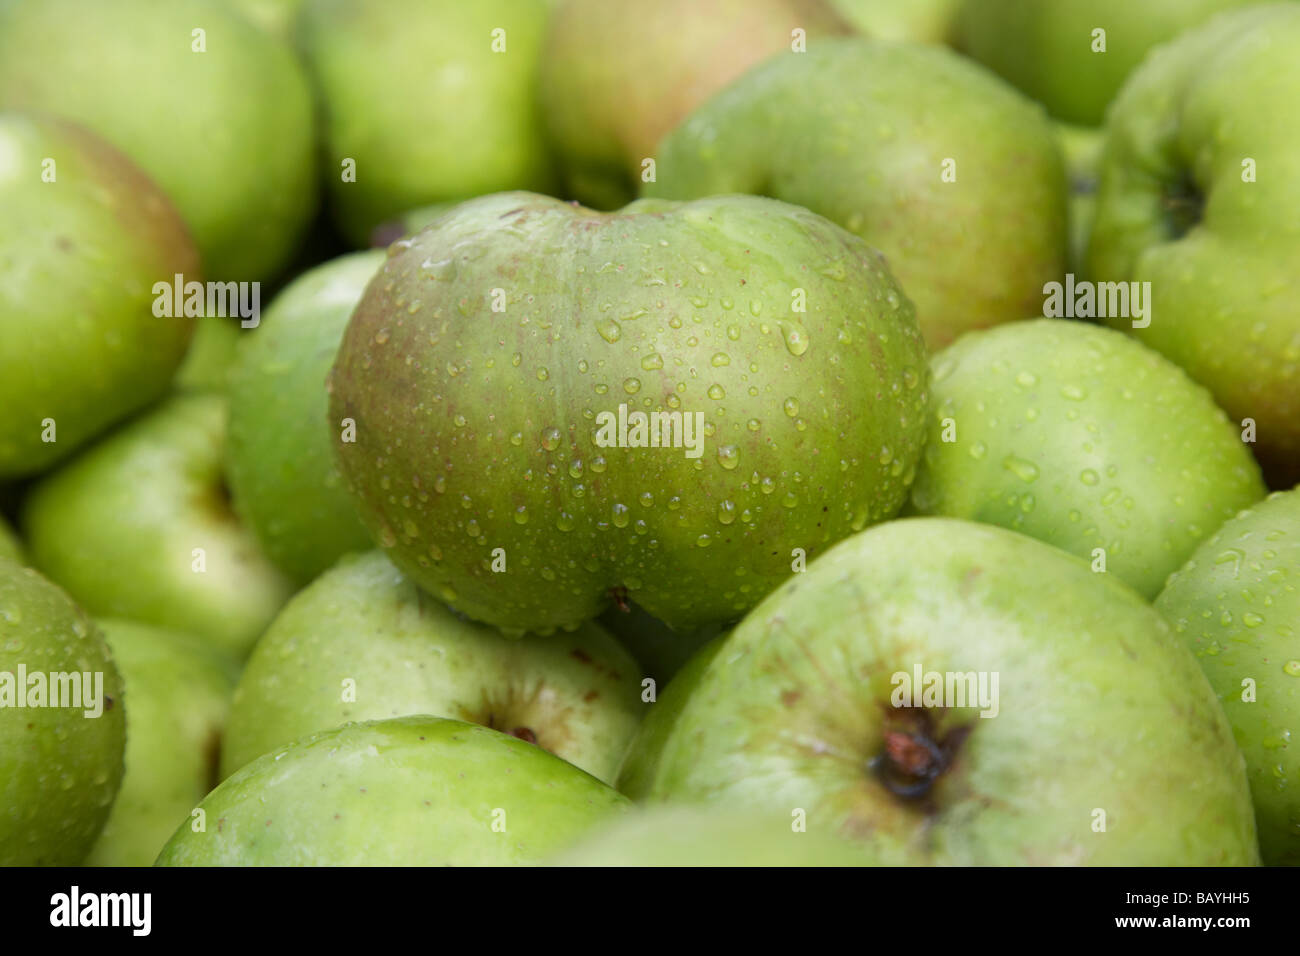 malus domestica Bramley Seeling apple crop of armagh bramley apples - Stock Image